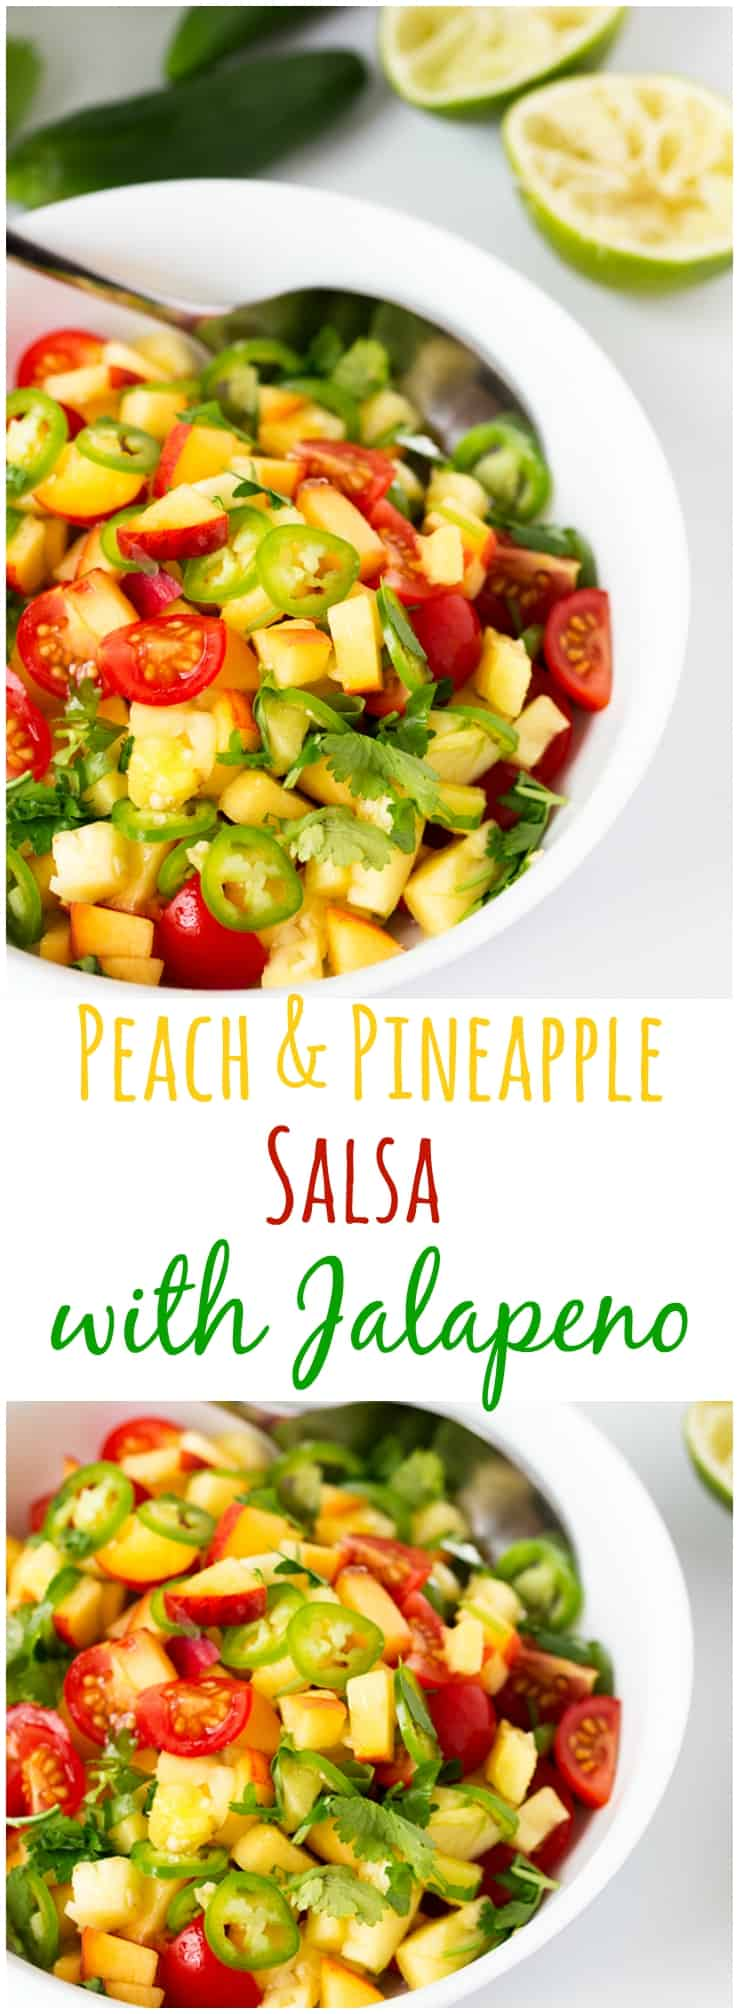 Peach and Pineapple Salsa with a Jalapeño kick.